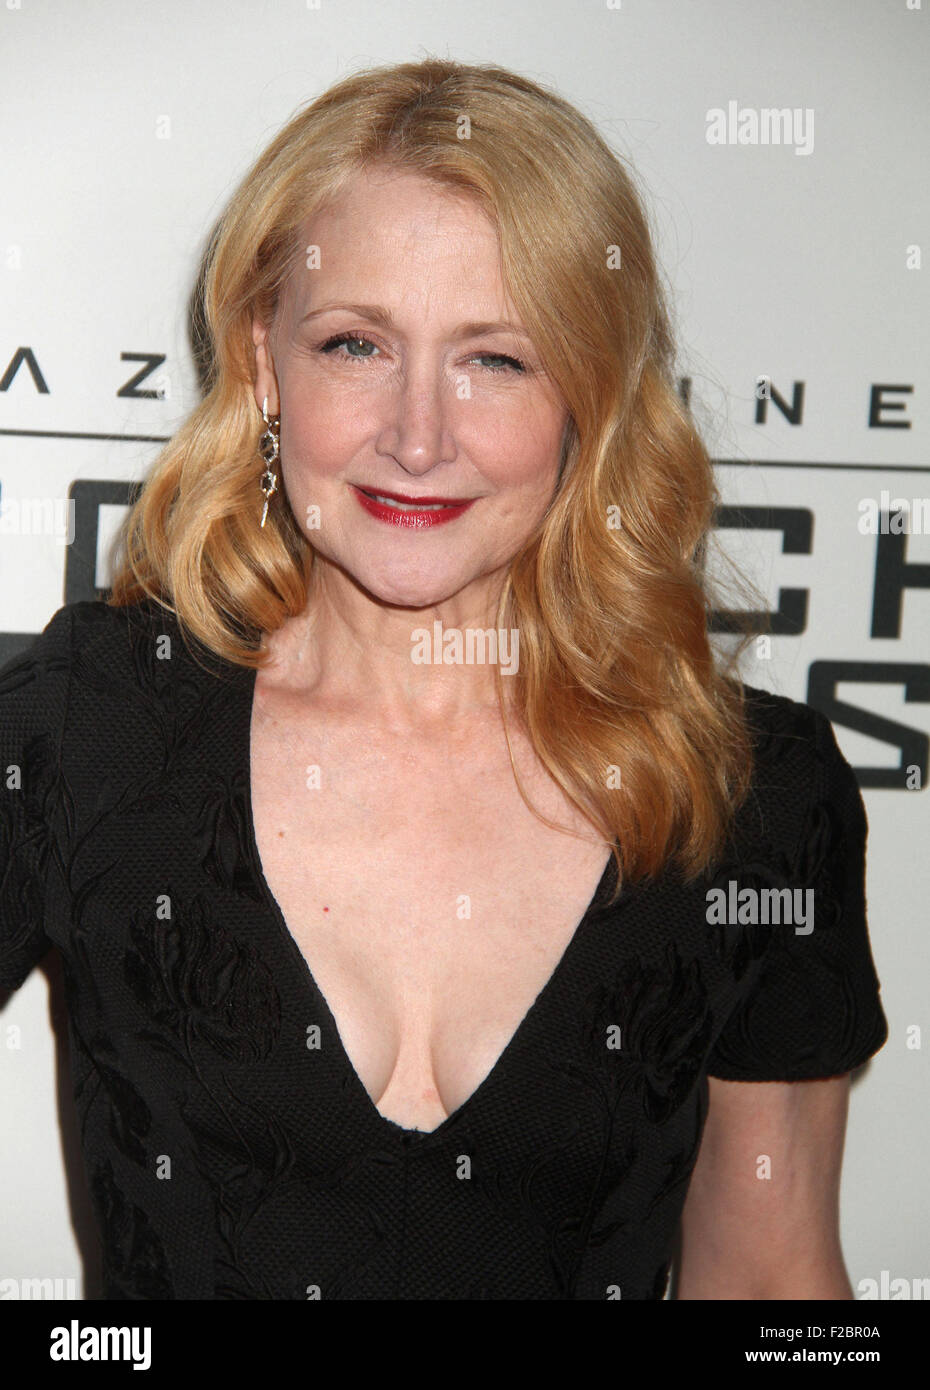 New York, New York, USA. 15th Sep, 2015. Actress PATRICIA CLARKSON attends the New York premiere of the 'Maze - Stock Image